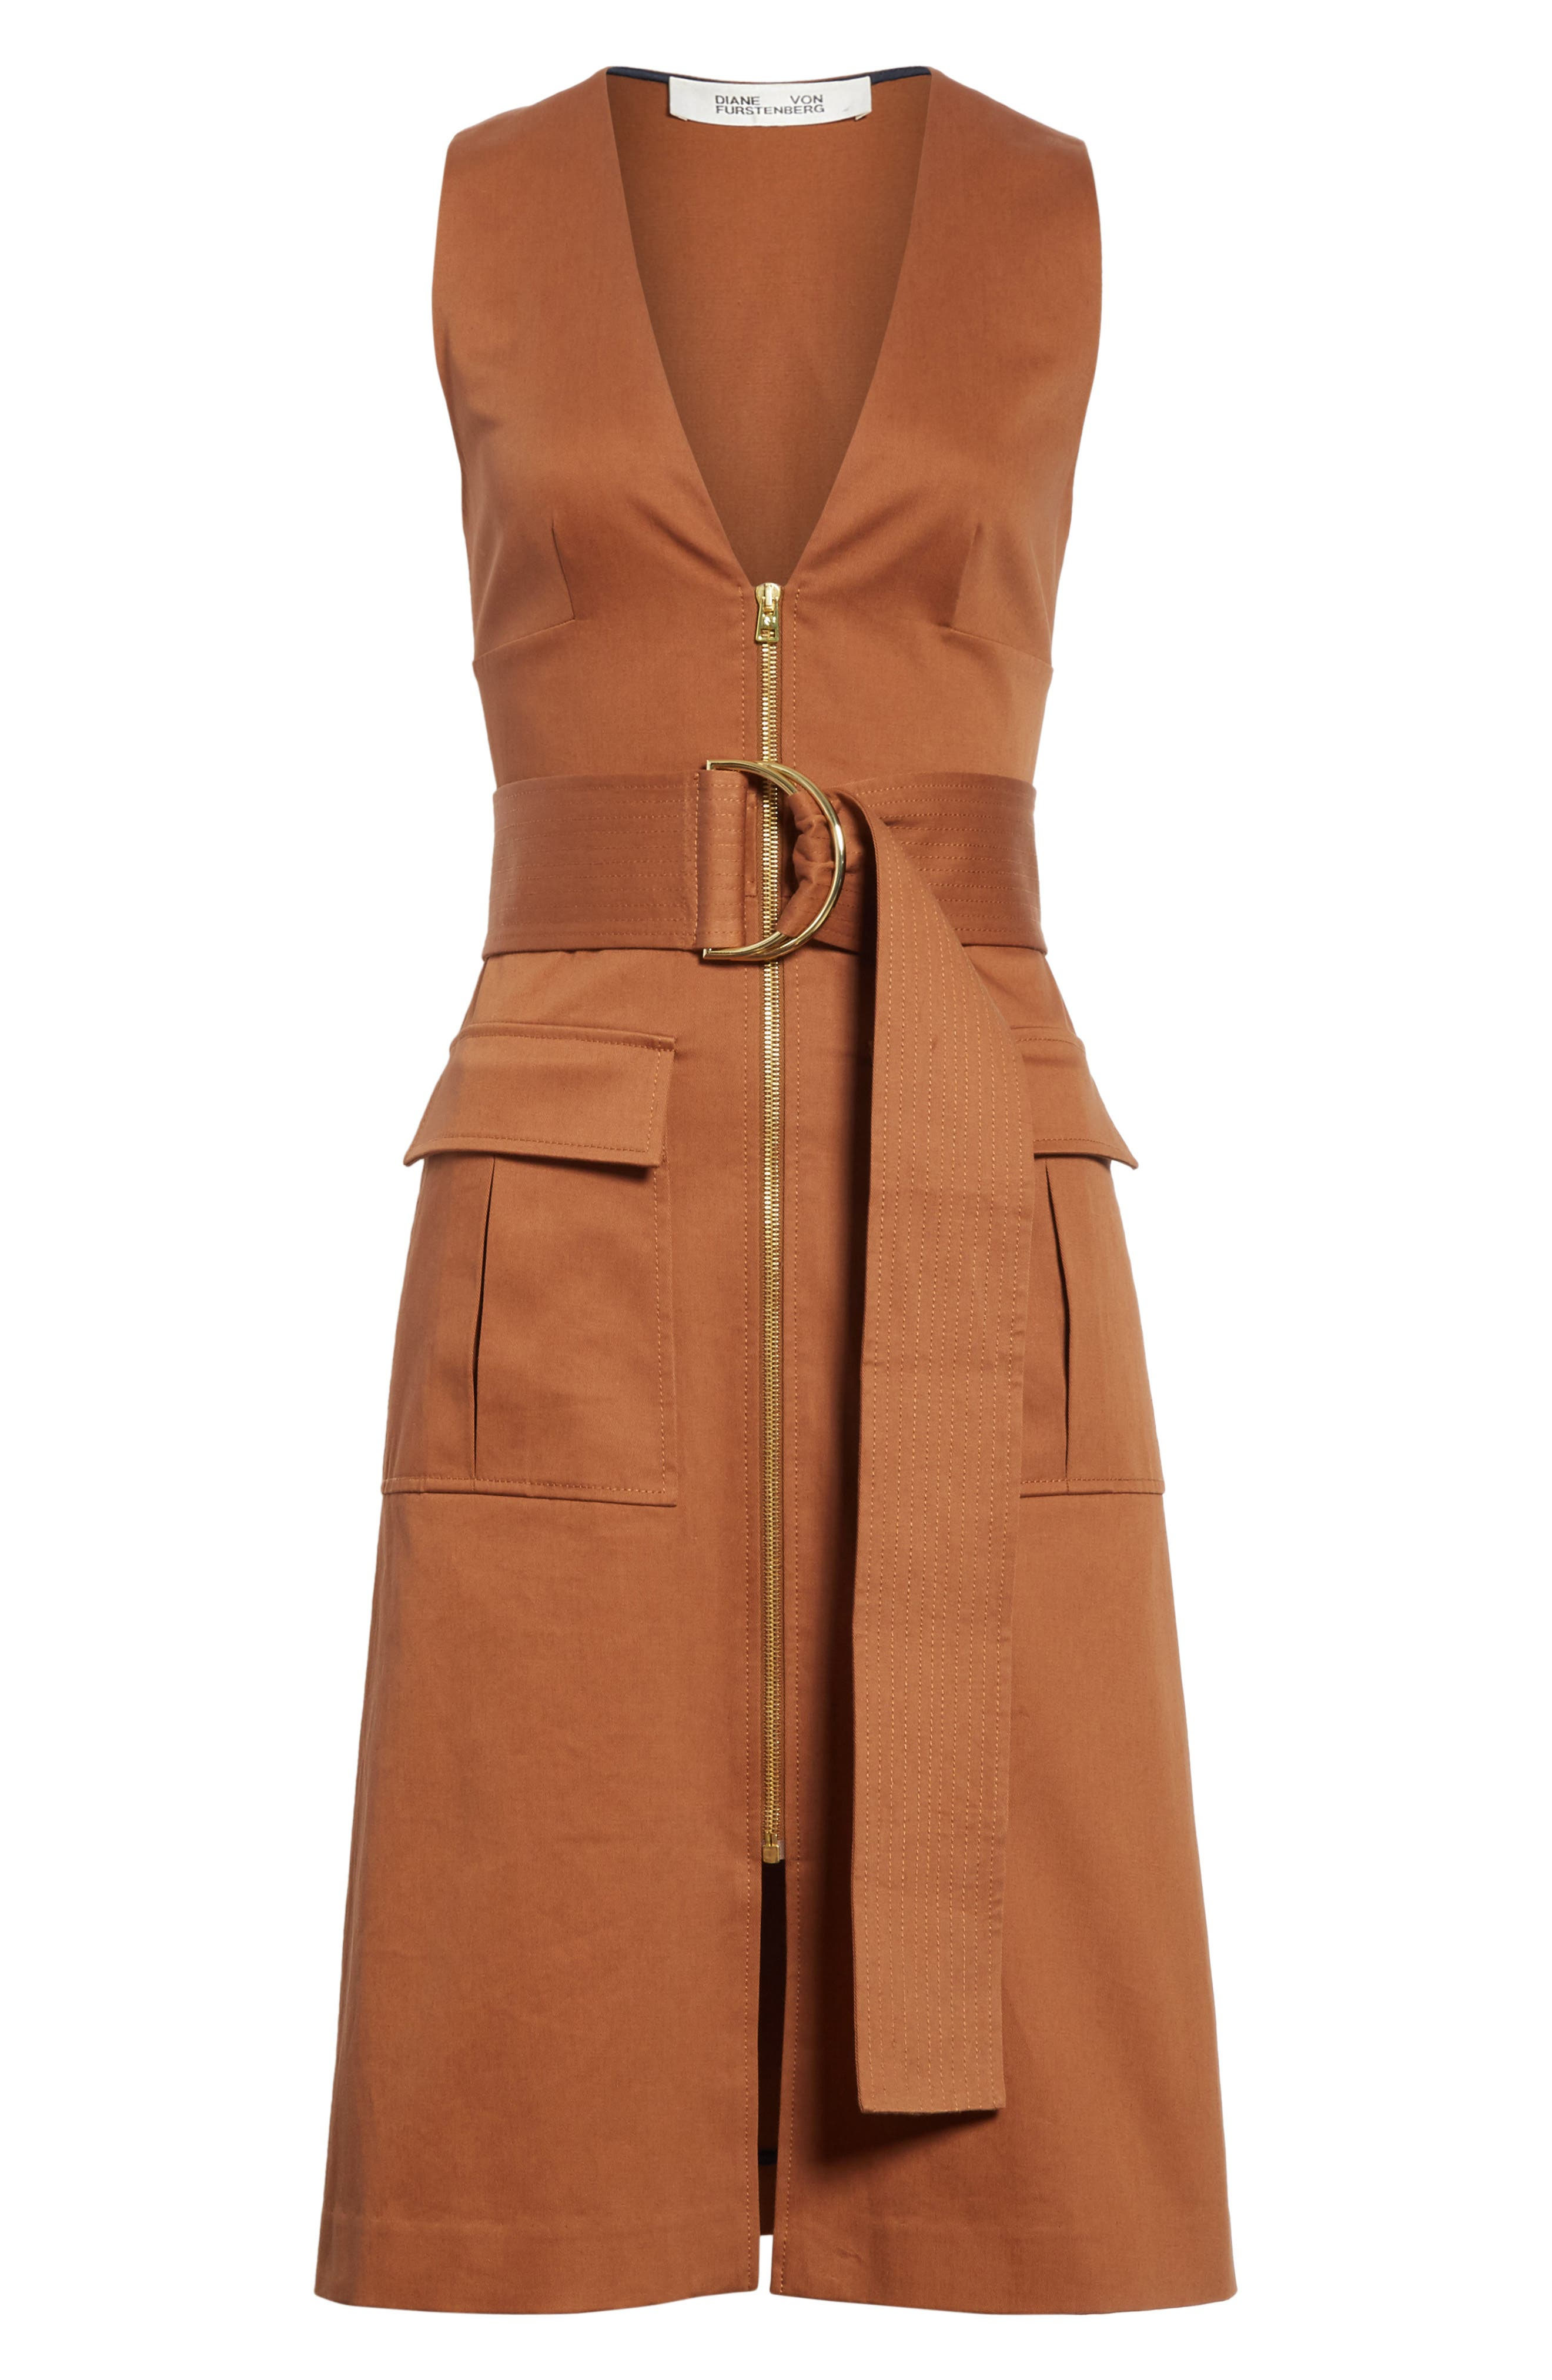 Diane von Furstenberg Zip Front Dress,                             Alternate thumbnail 6, color,                             203